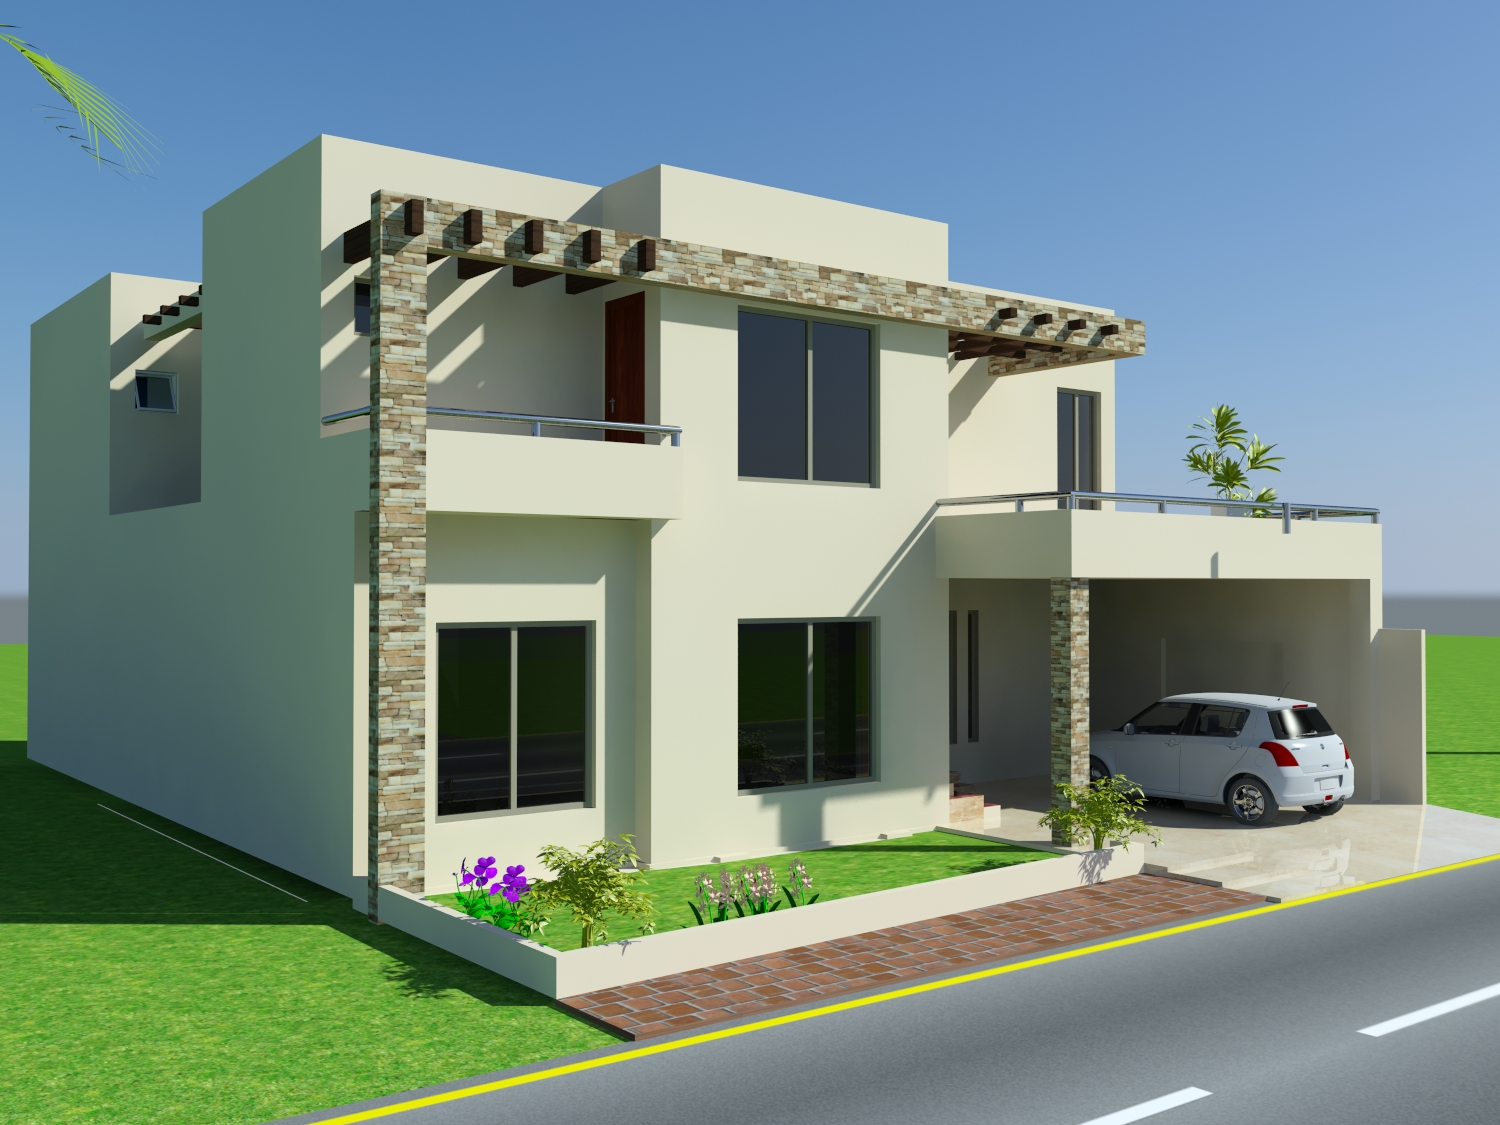 3d front 10 marla house design mian wali - D home design front elevation ...